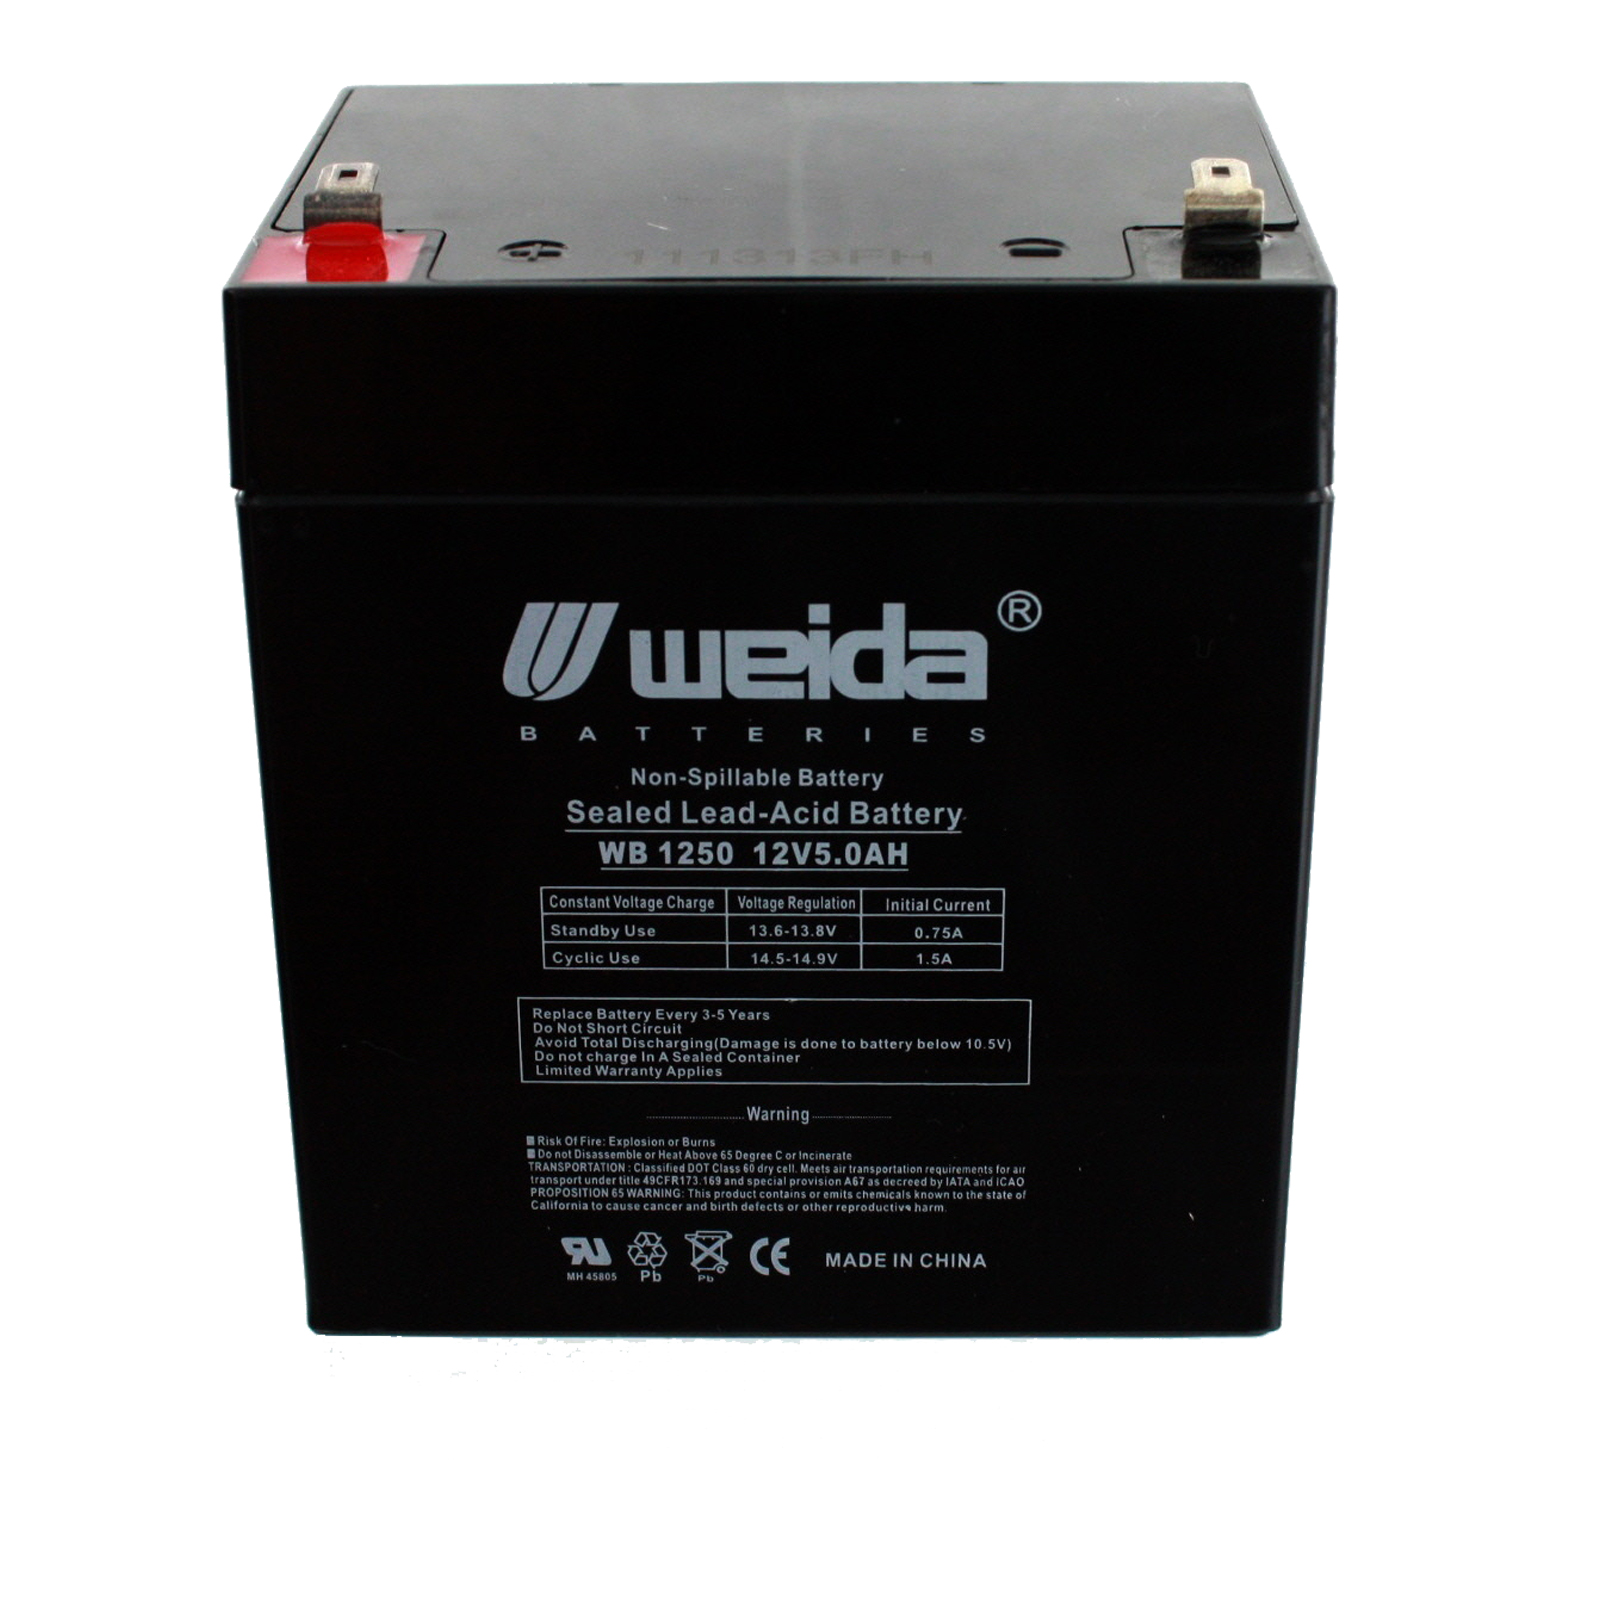 New 12v 5ah Sla Battery For Home Security Alarm Ub1250 Ps